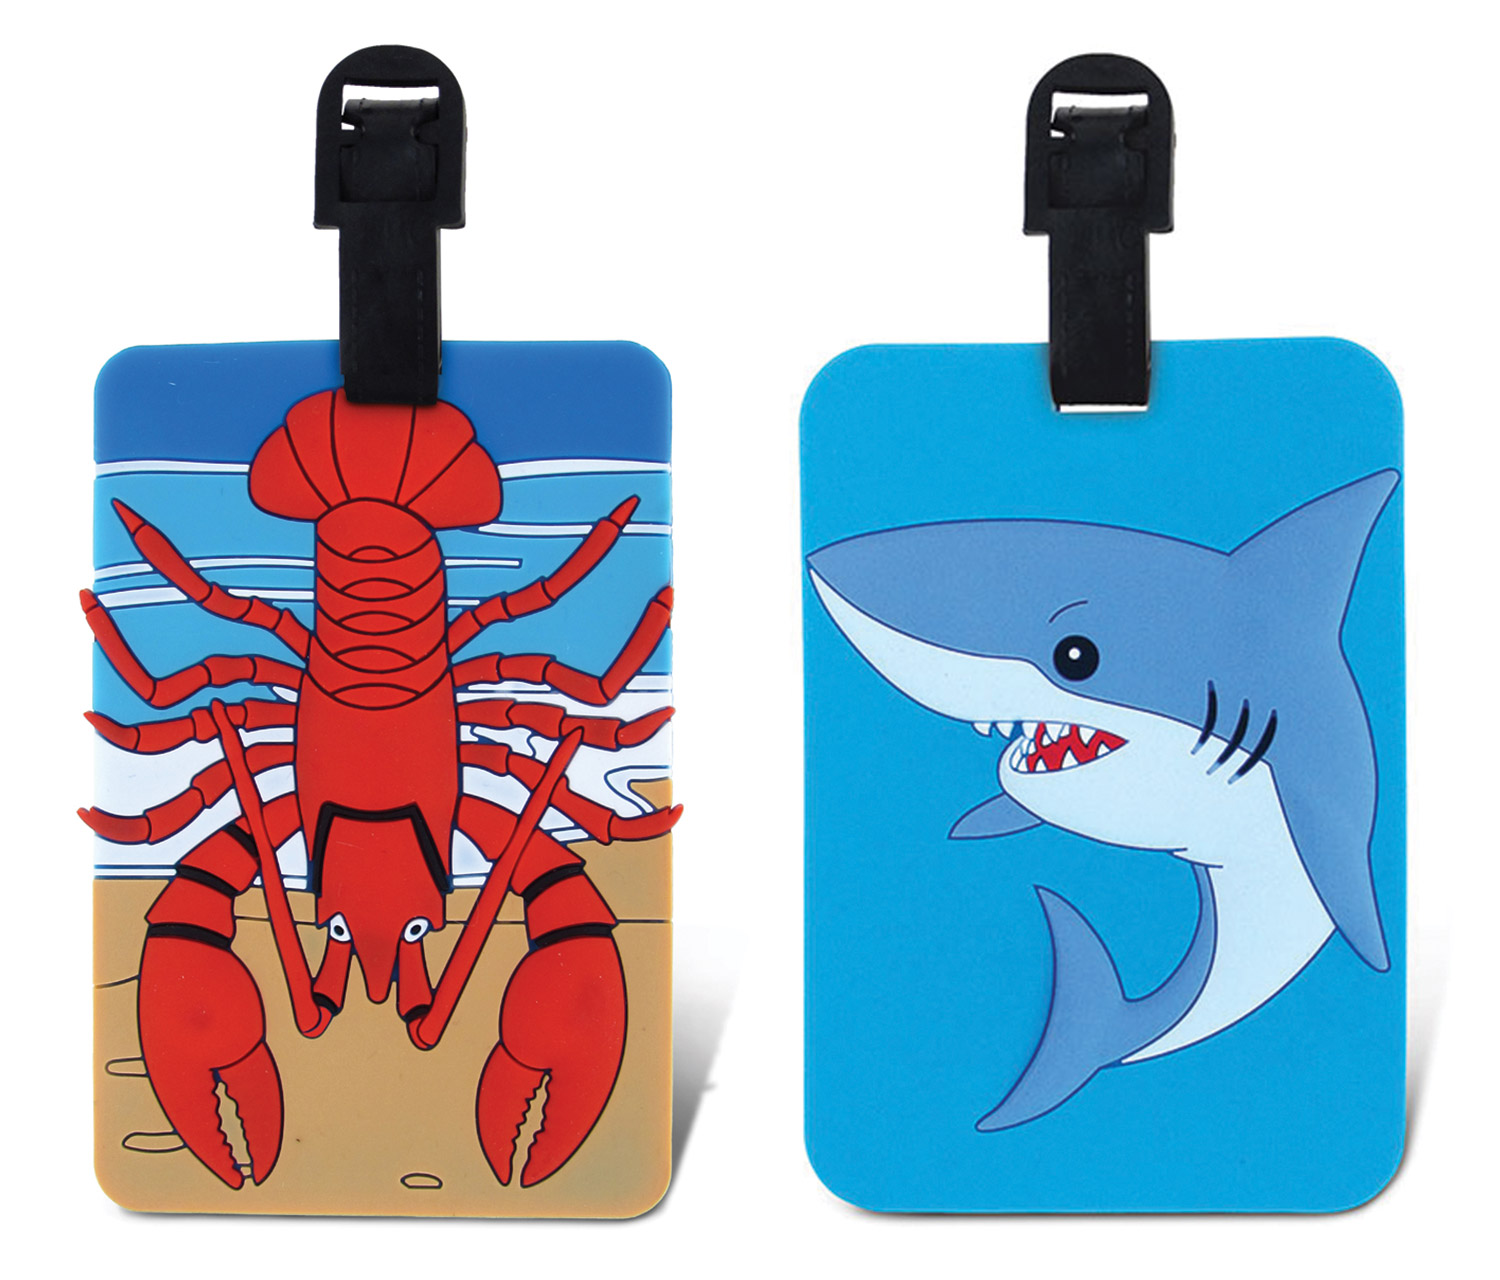 Puzzled Taggage Lobster And Shark Luggage Tag 3.5X5 Inch